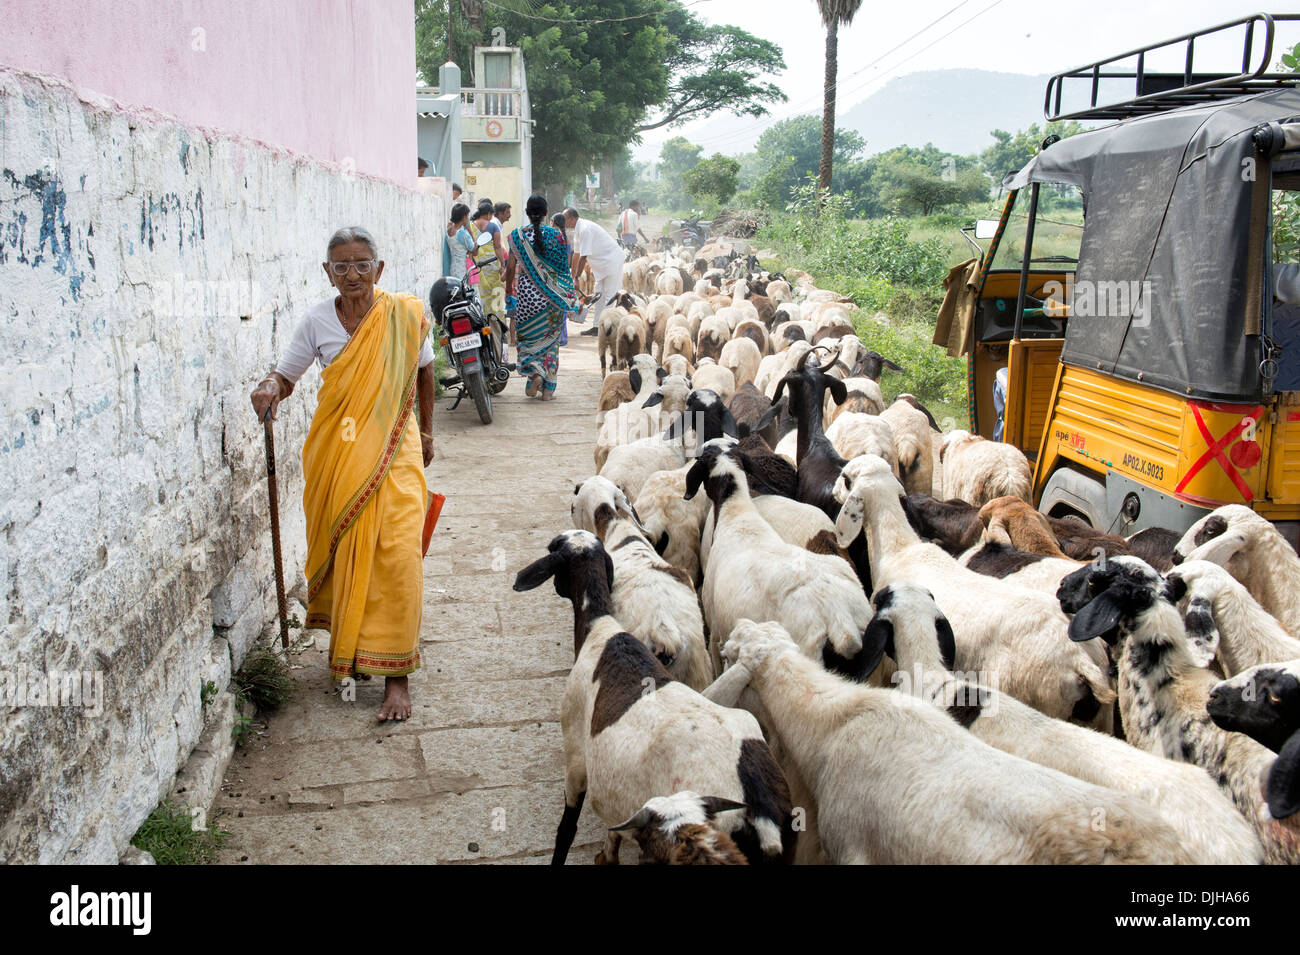 Rural Indian woman walking past goats outside the Sri Sathya Sai Baba mobile outreach hospital clinic. Andhra Pradesh, India - Stock Image